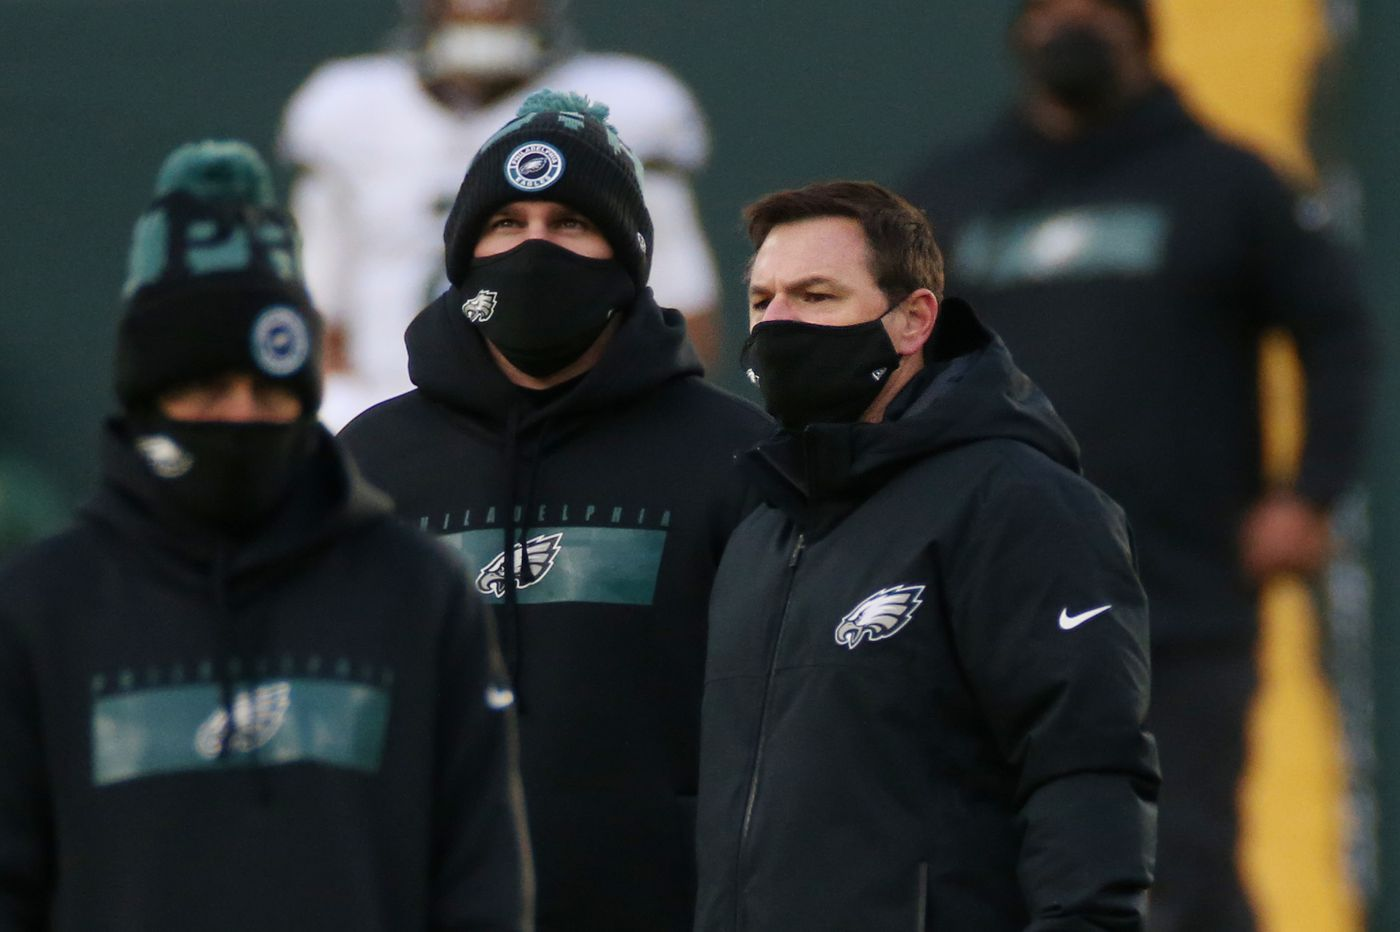 Eagles won't bring back offensive assistants Rich Scangarello and Marty Mornhinweg